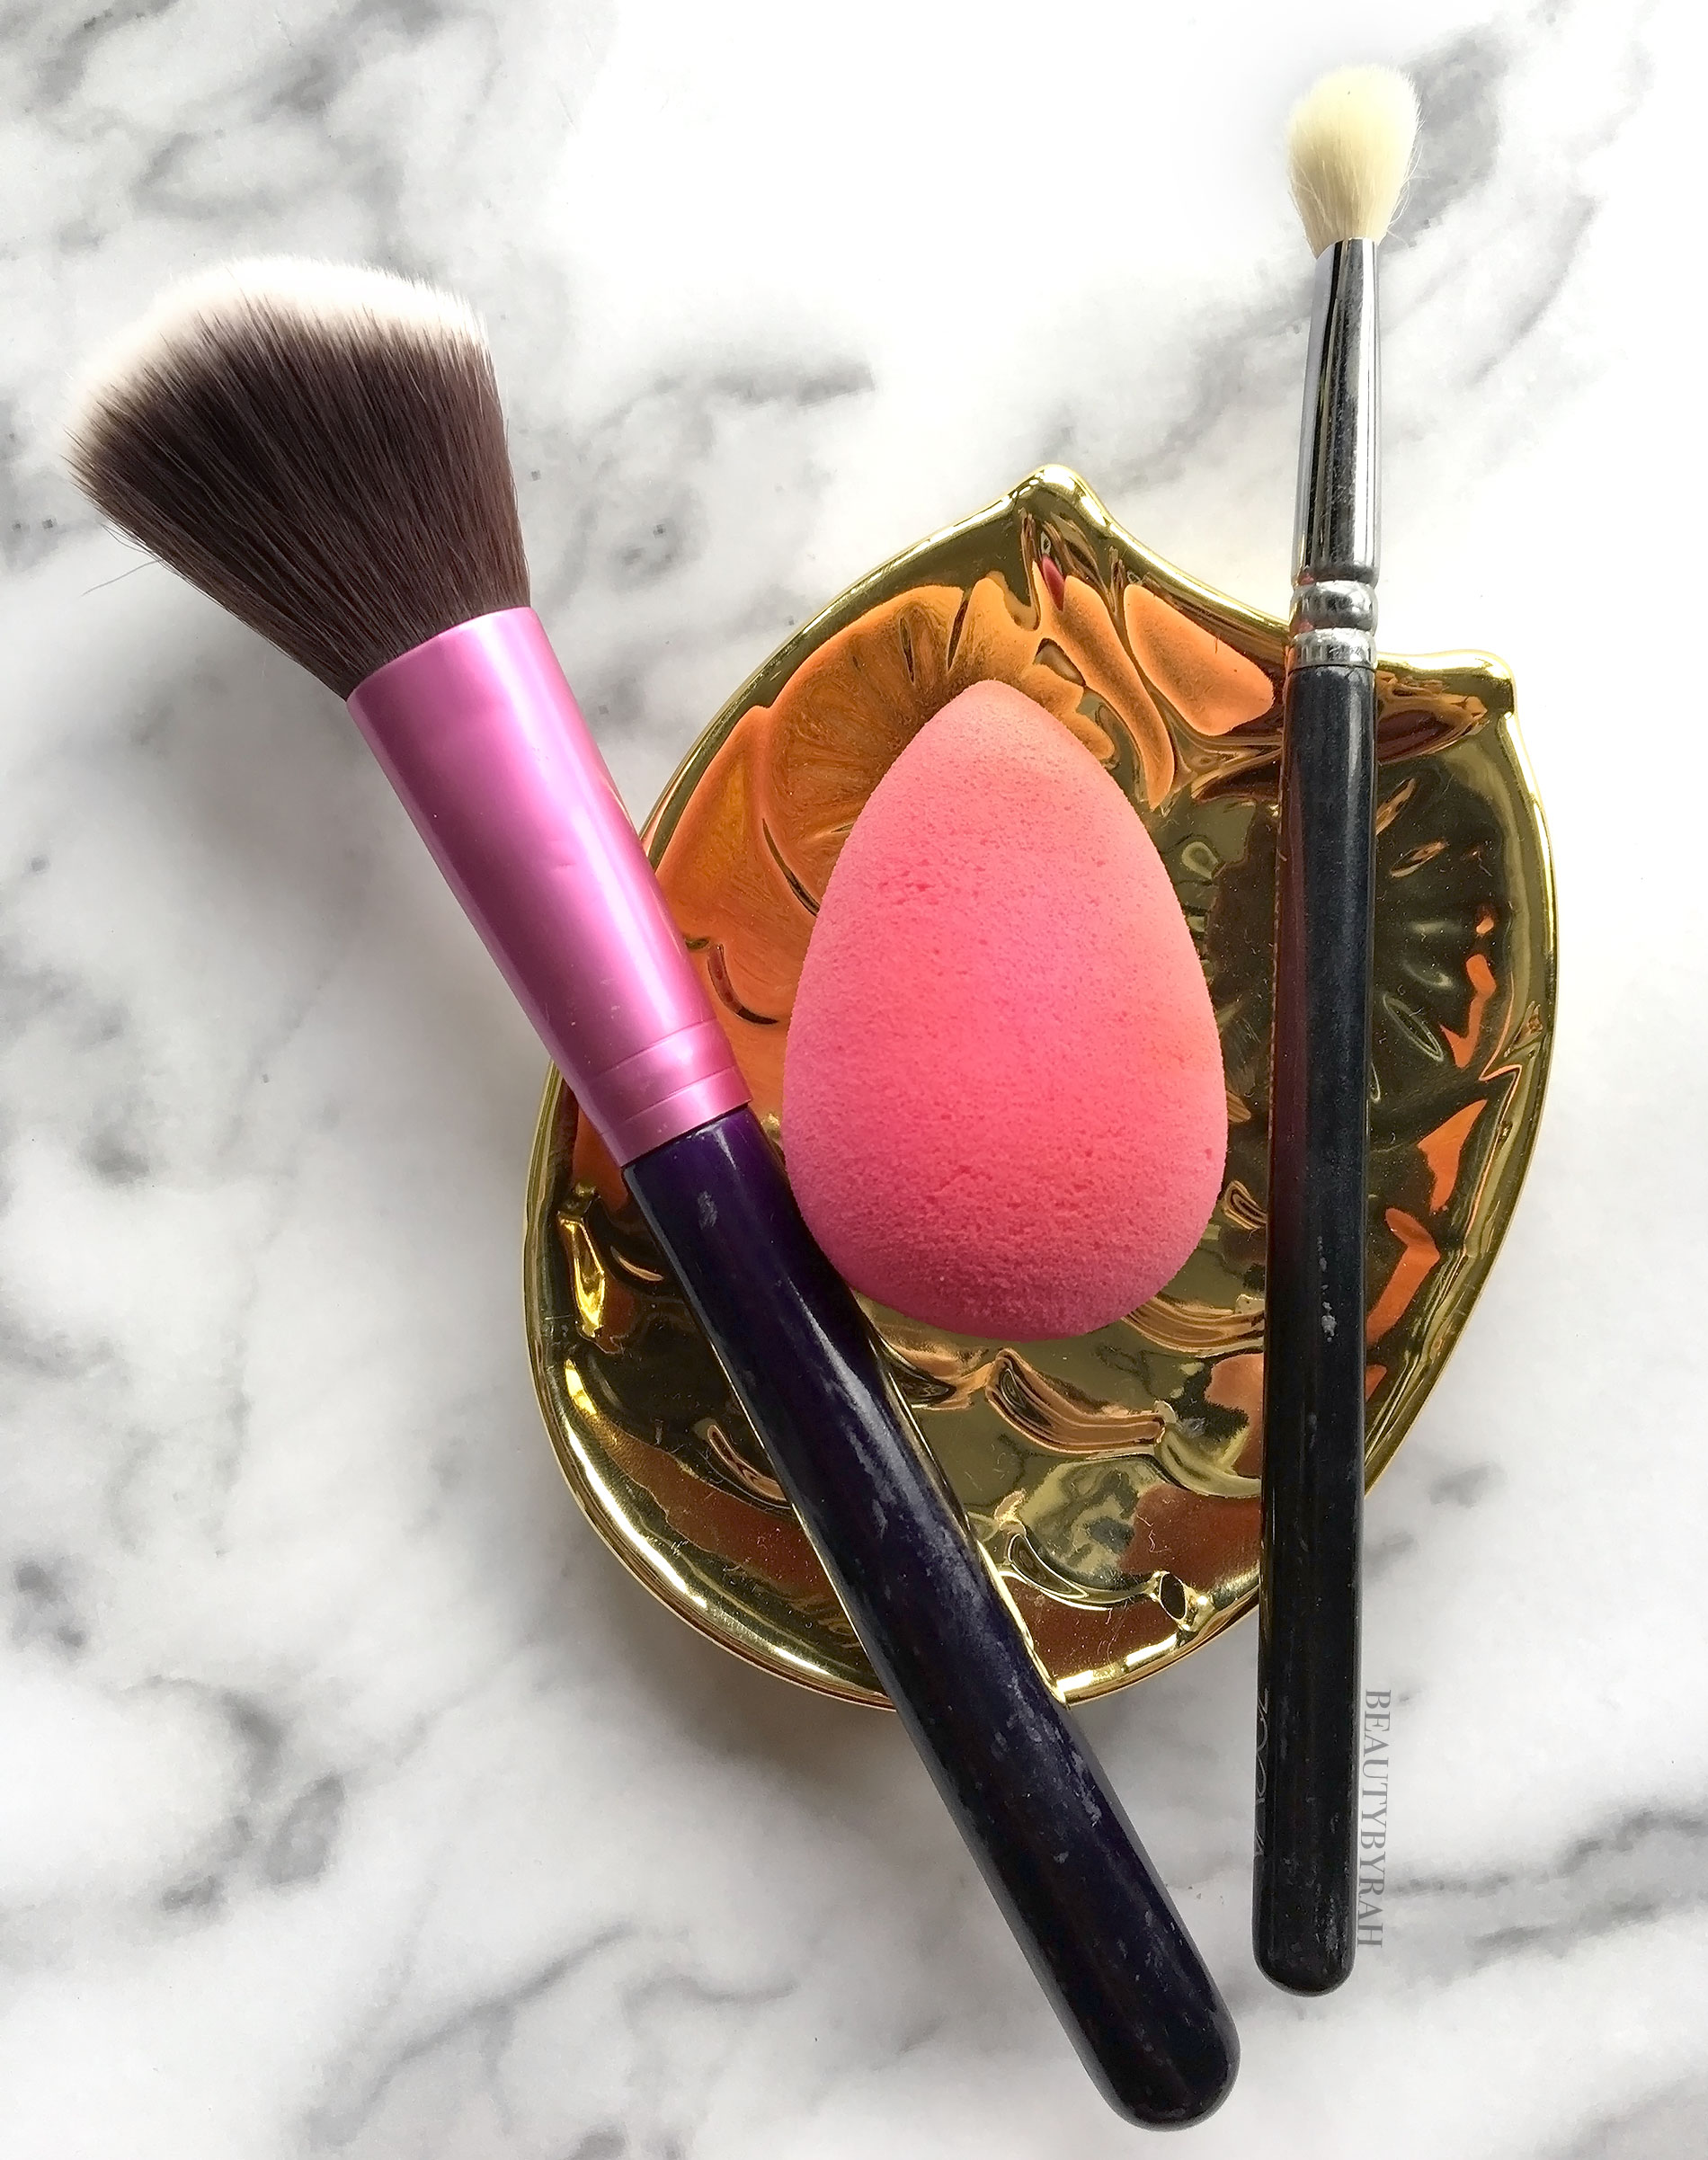 Makeup brushes mini guide for beginners